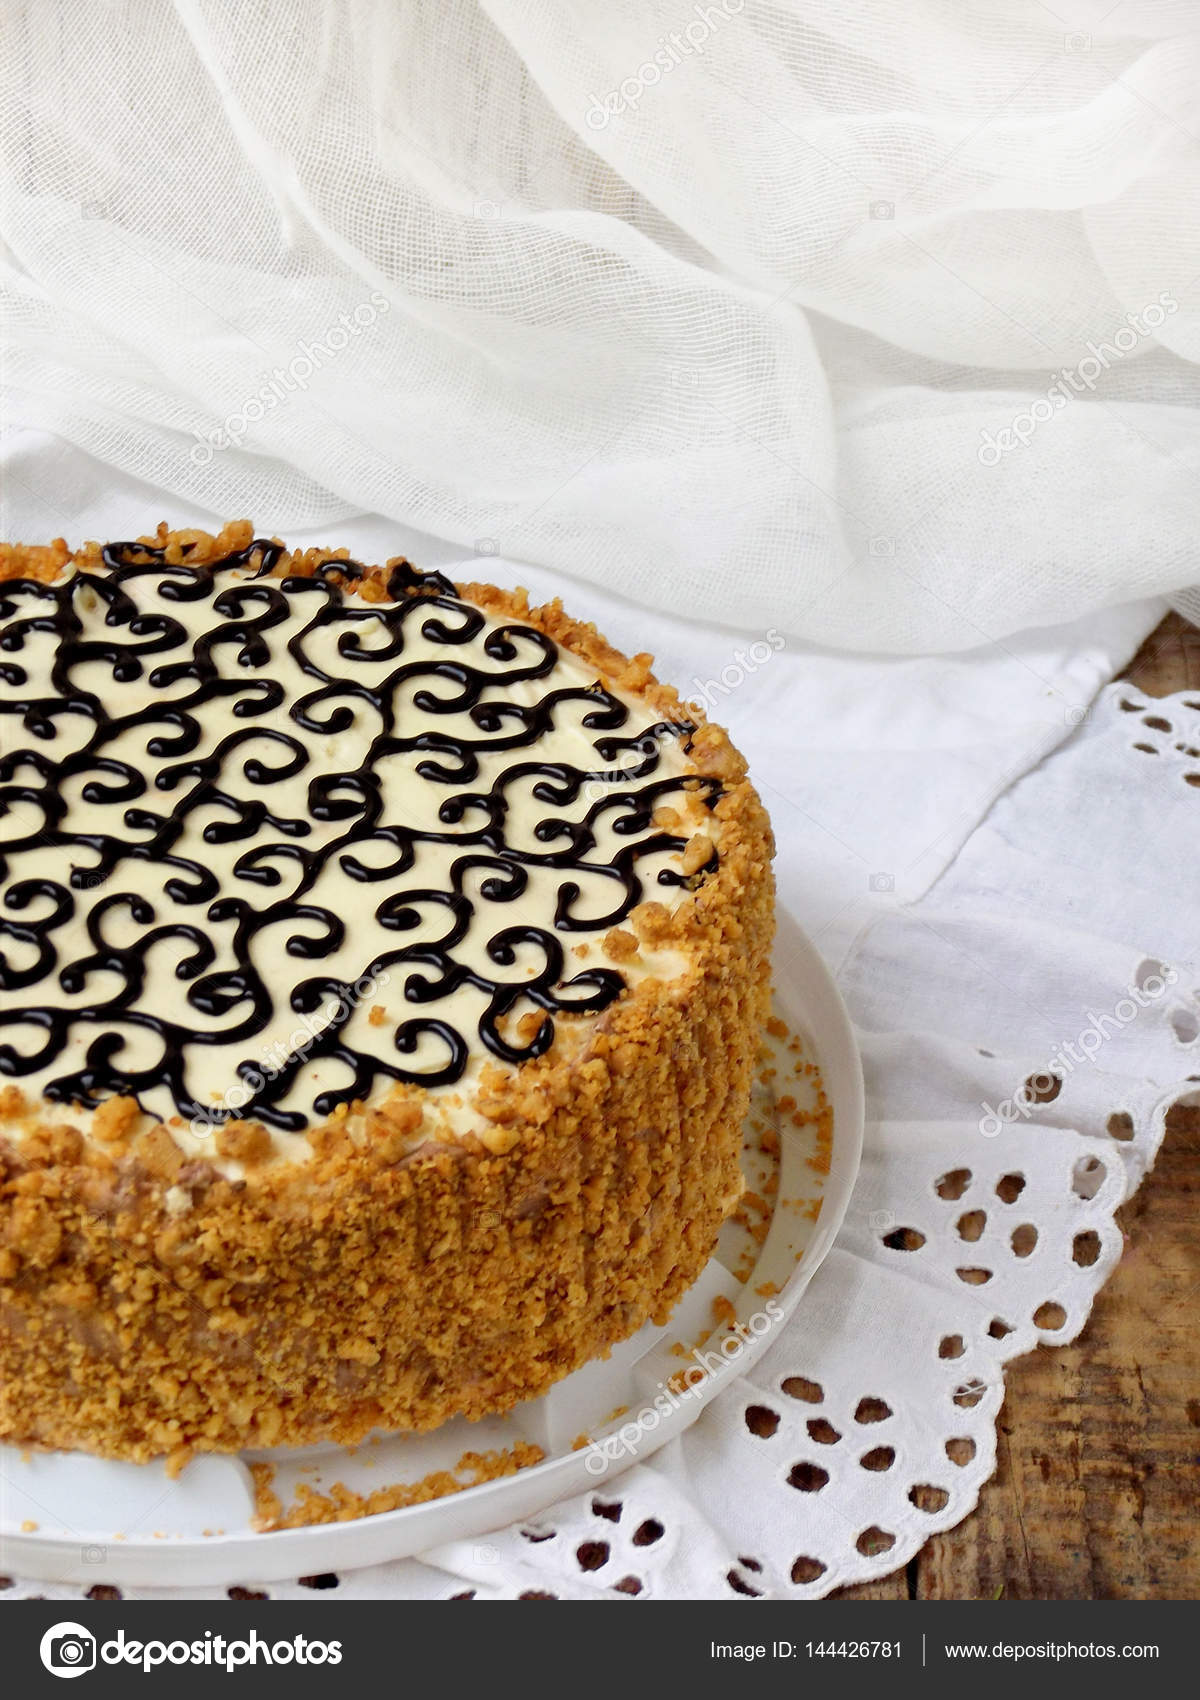 Homemade Cake With Nut Meringue Butter Cream And Decorated With